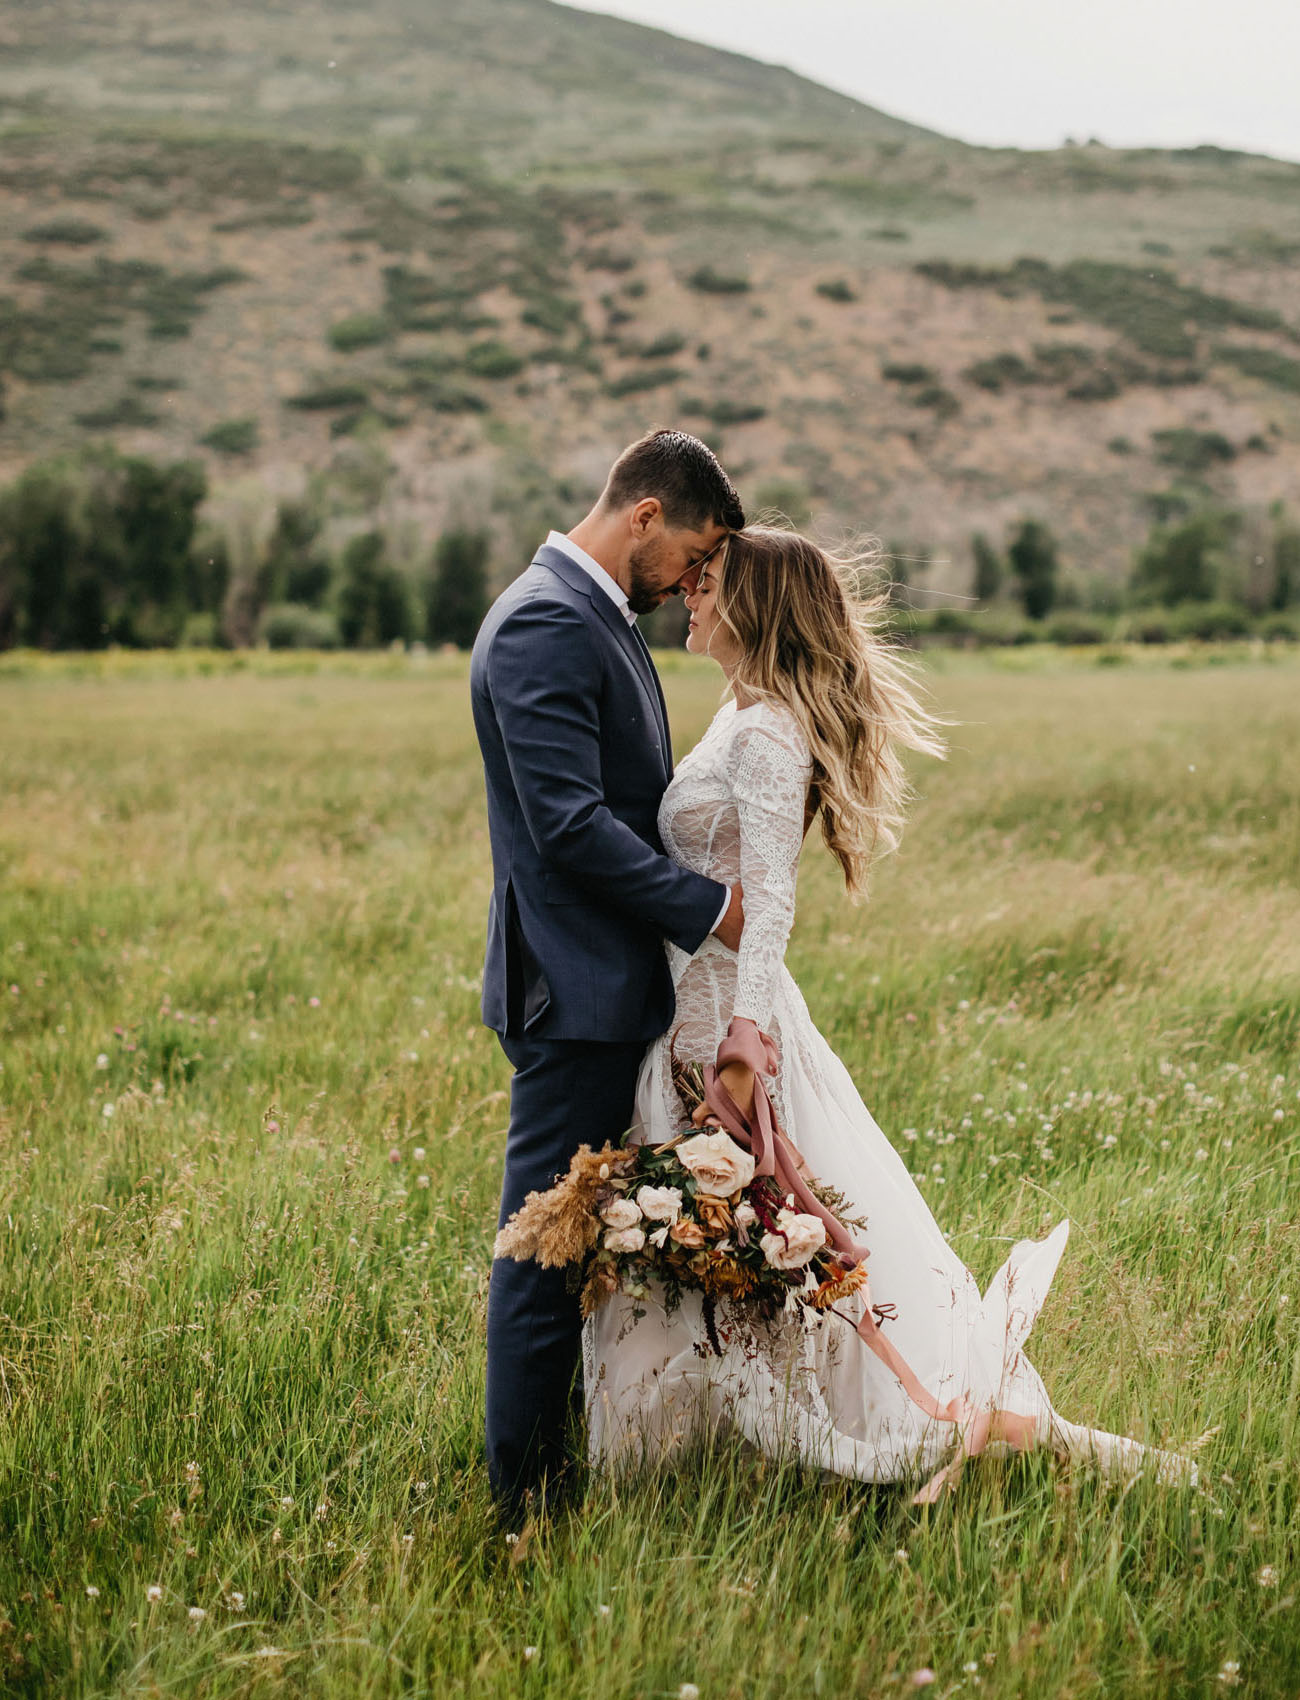 This couple went for a detination wedding in Utah, they love mountains and enjoy the landscape